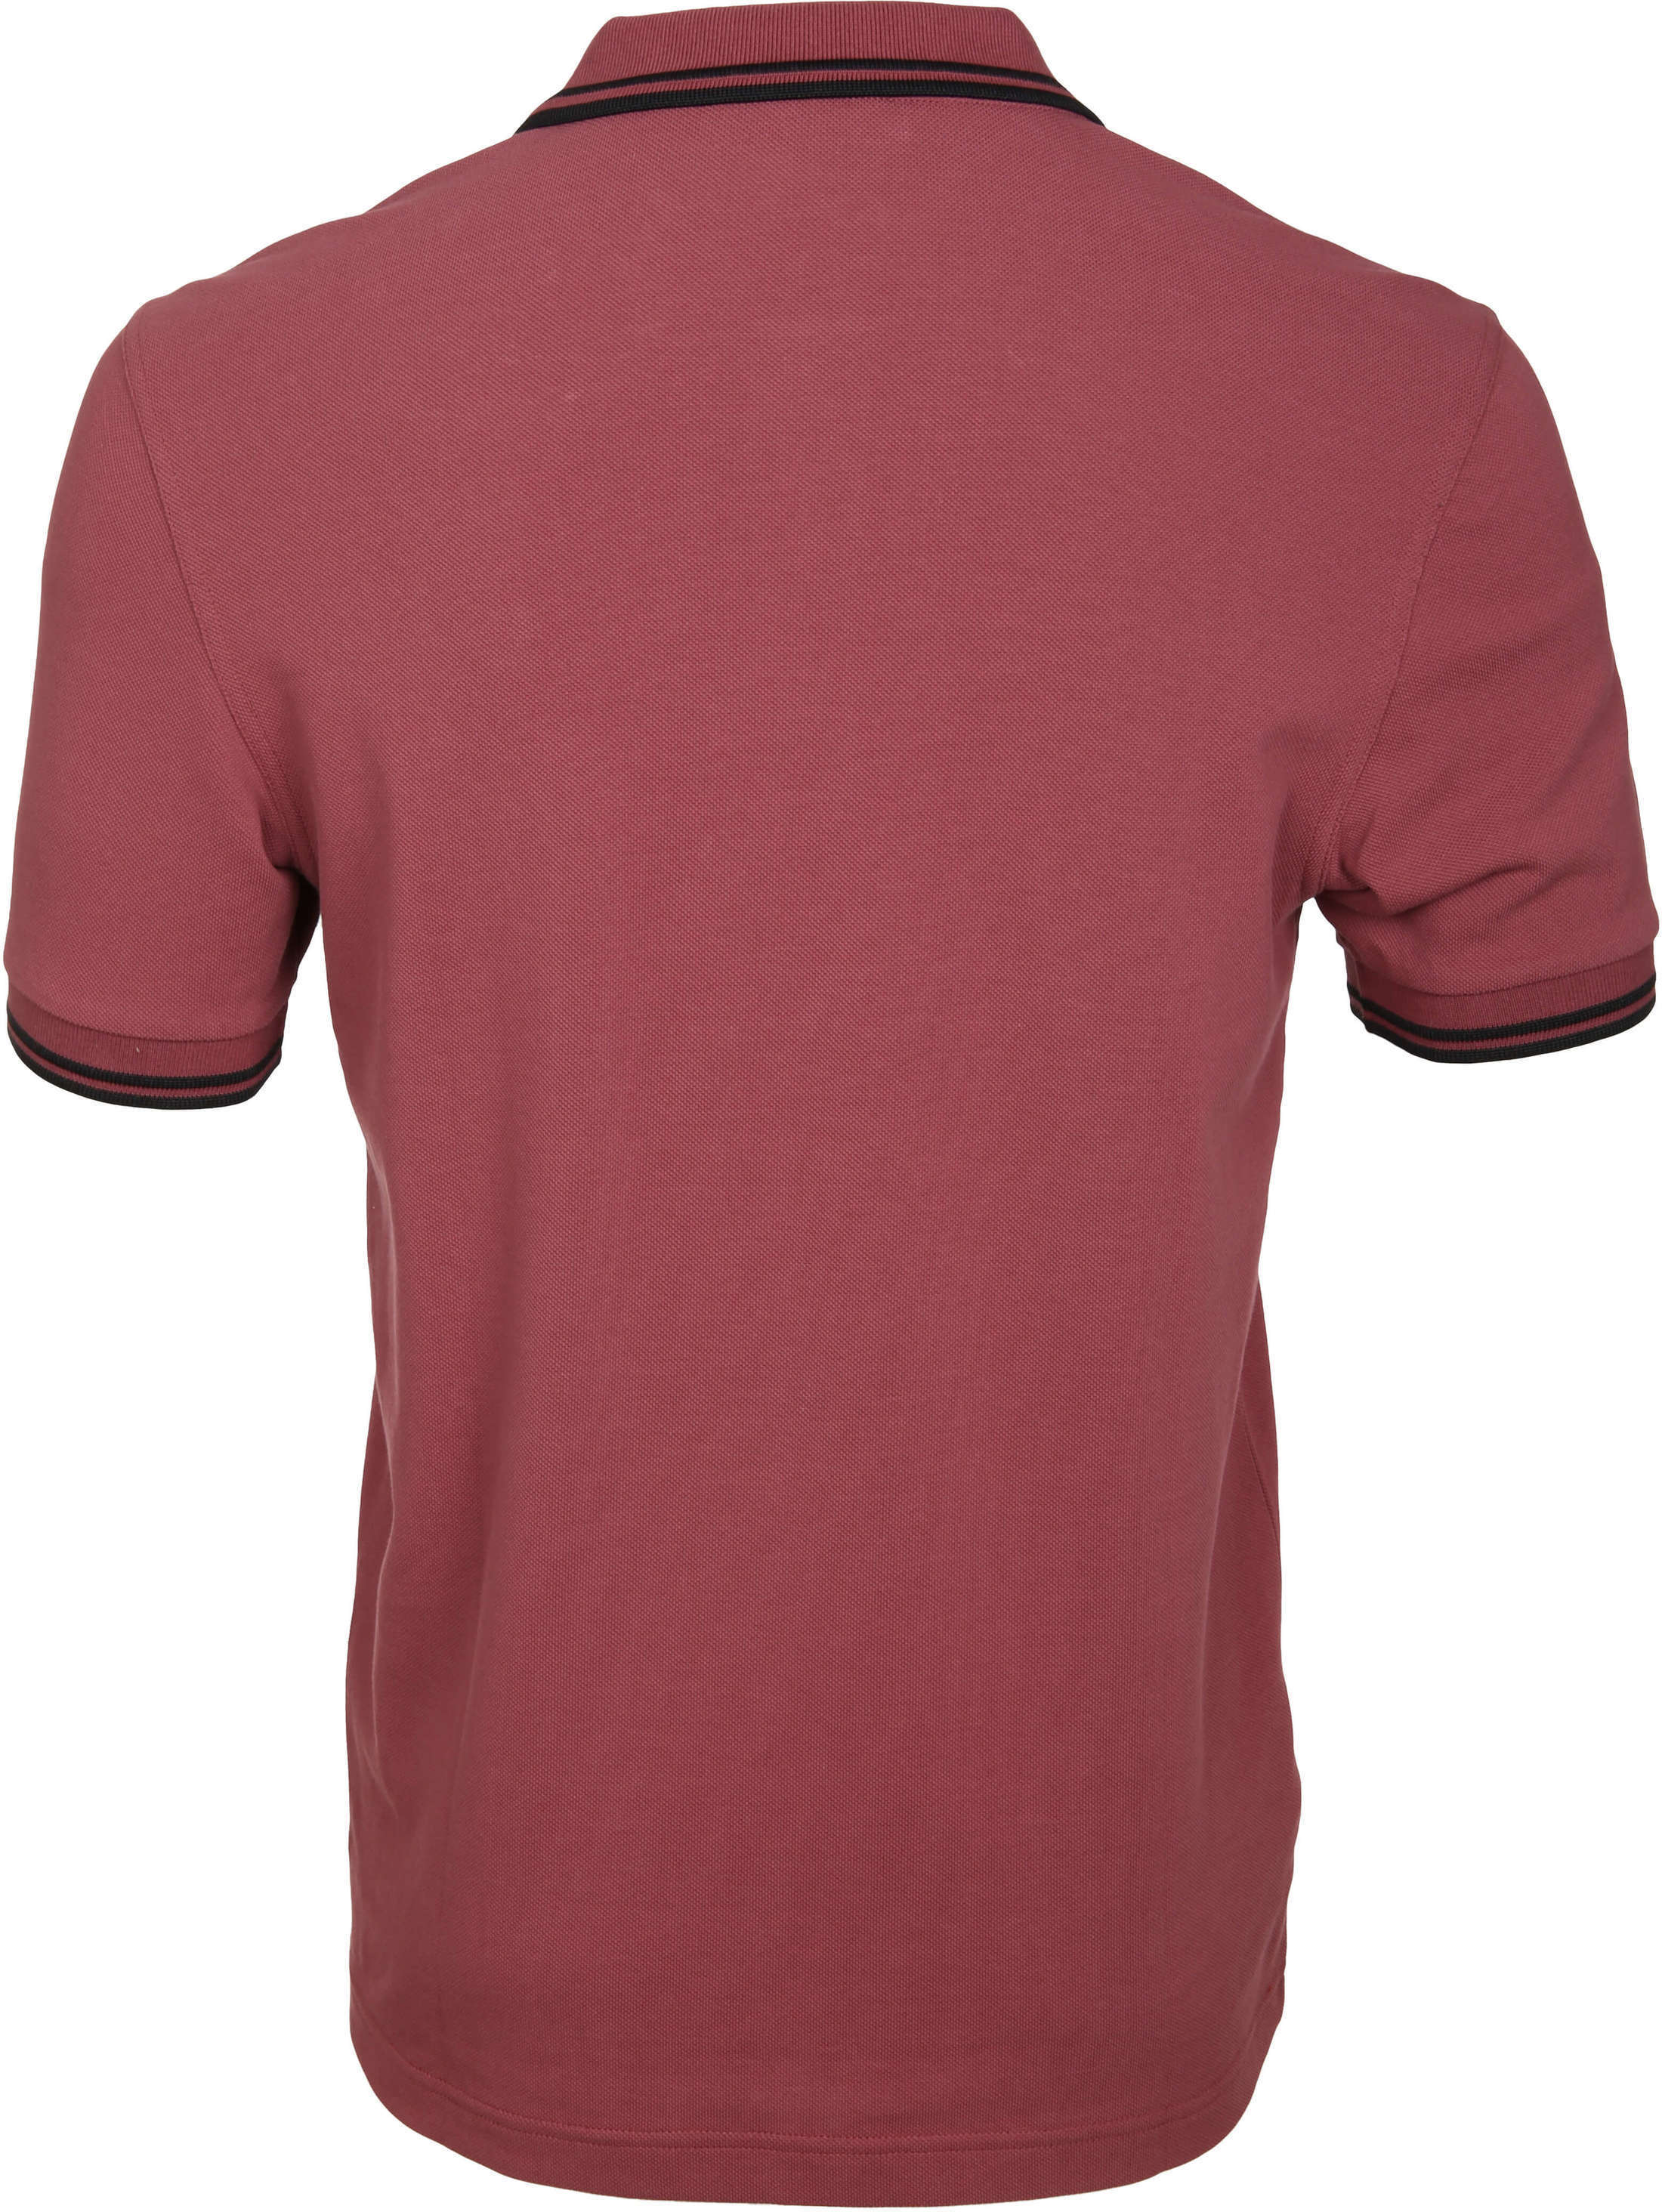 Fred Perry Polo G36 Rood foto 2